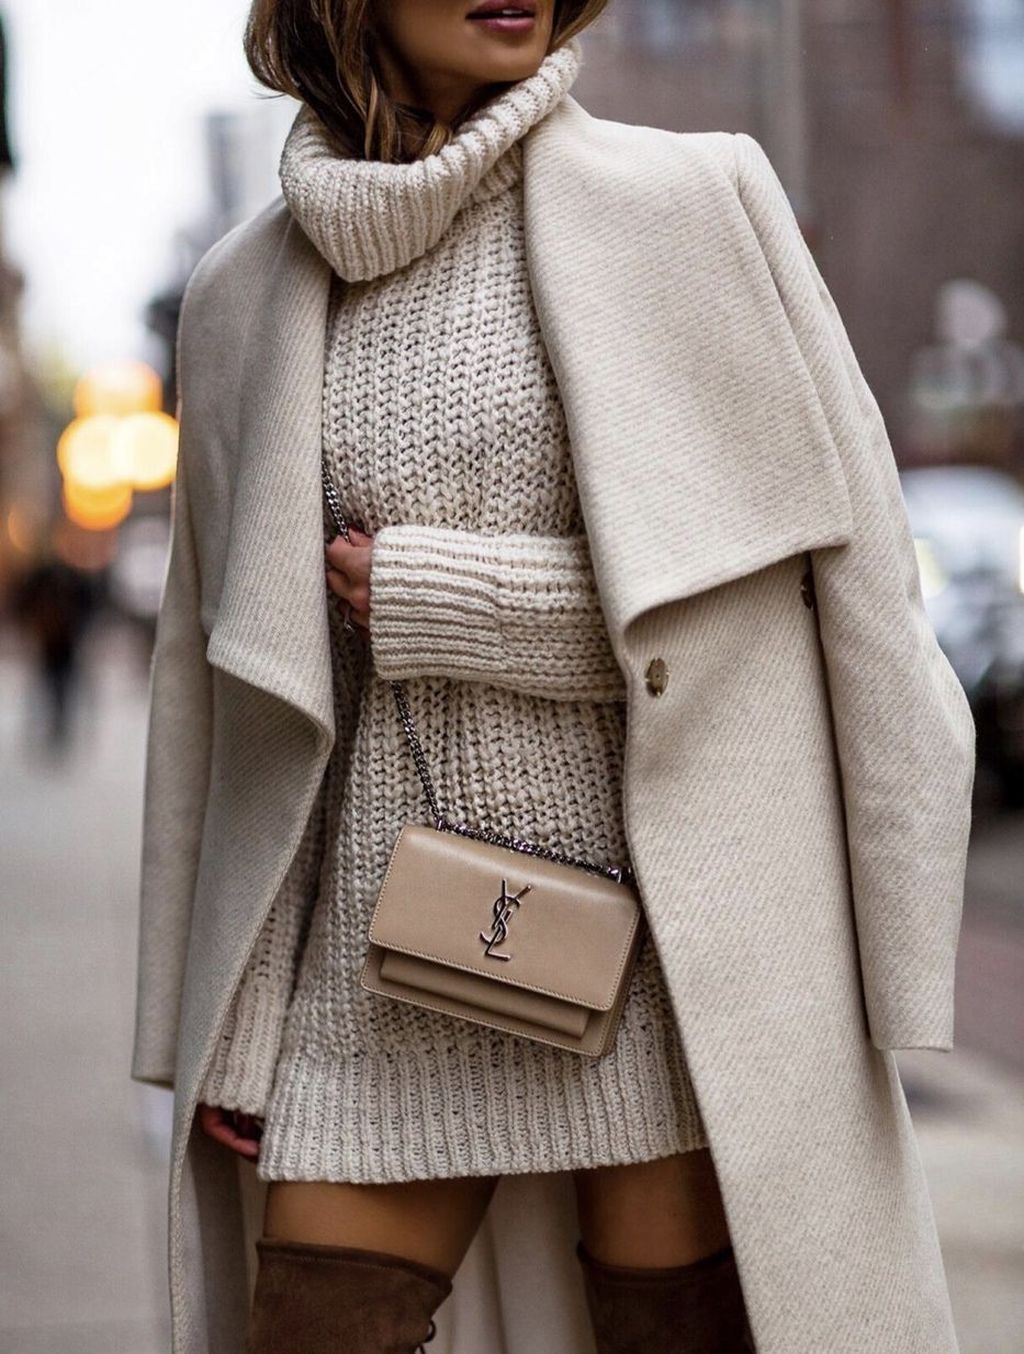 What's Hot On Pinterest: Fashion Trends 2019 Are Gettin ...